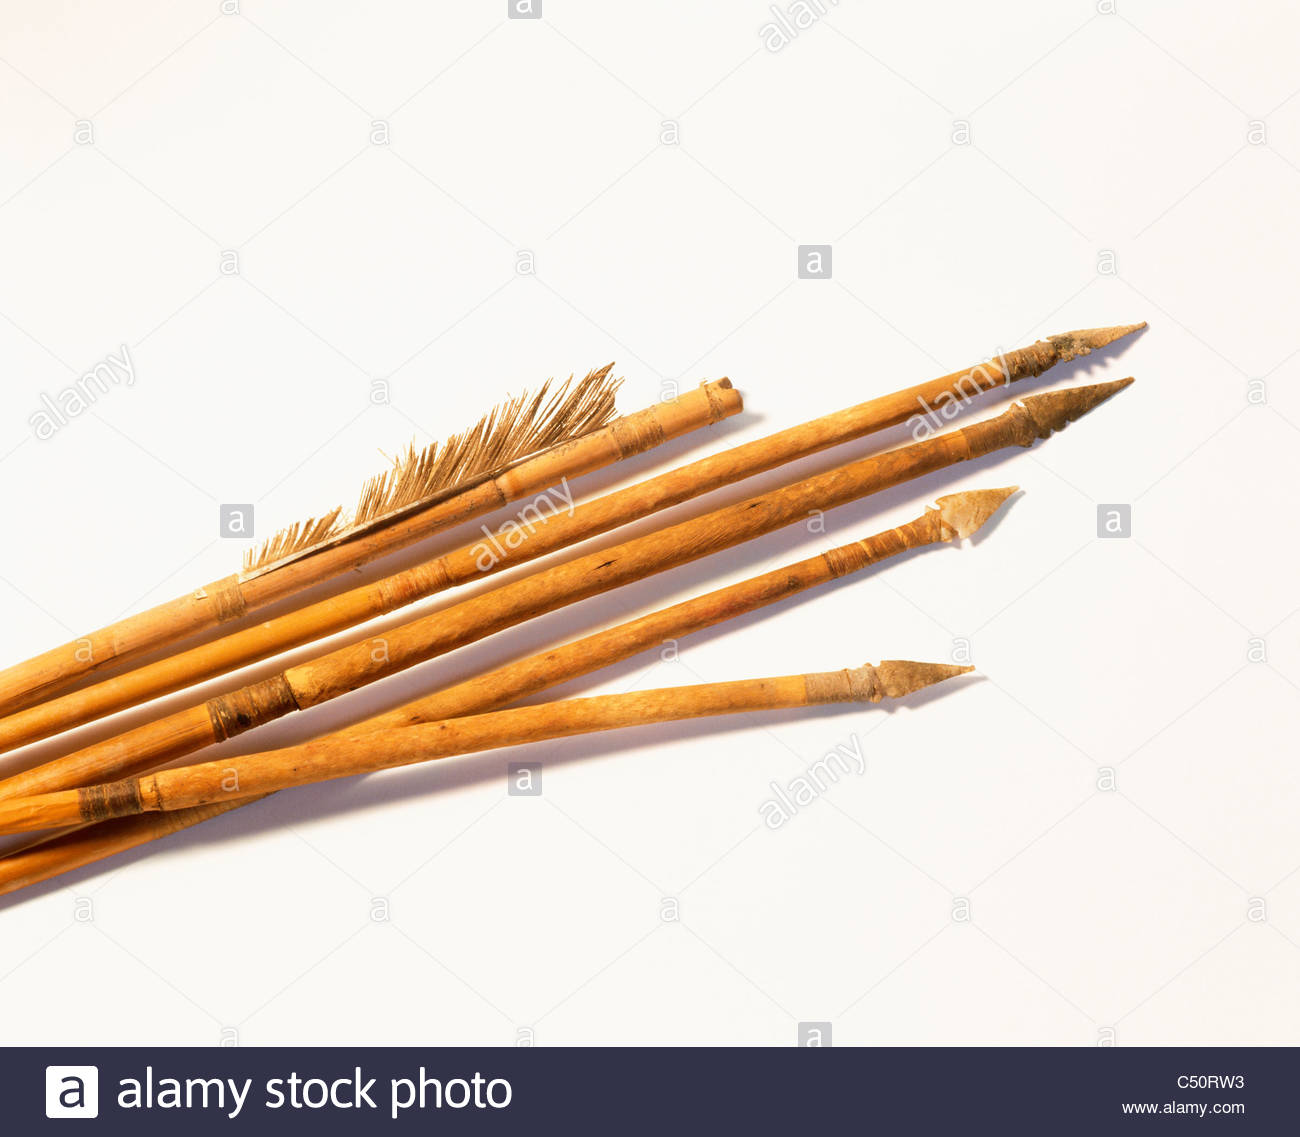 Prehistoric wood arrows with stone points. Anasazi culture. [Chaco Culture National Historical Park] New Mexico. - Stock Image